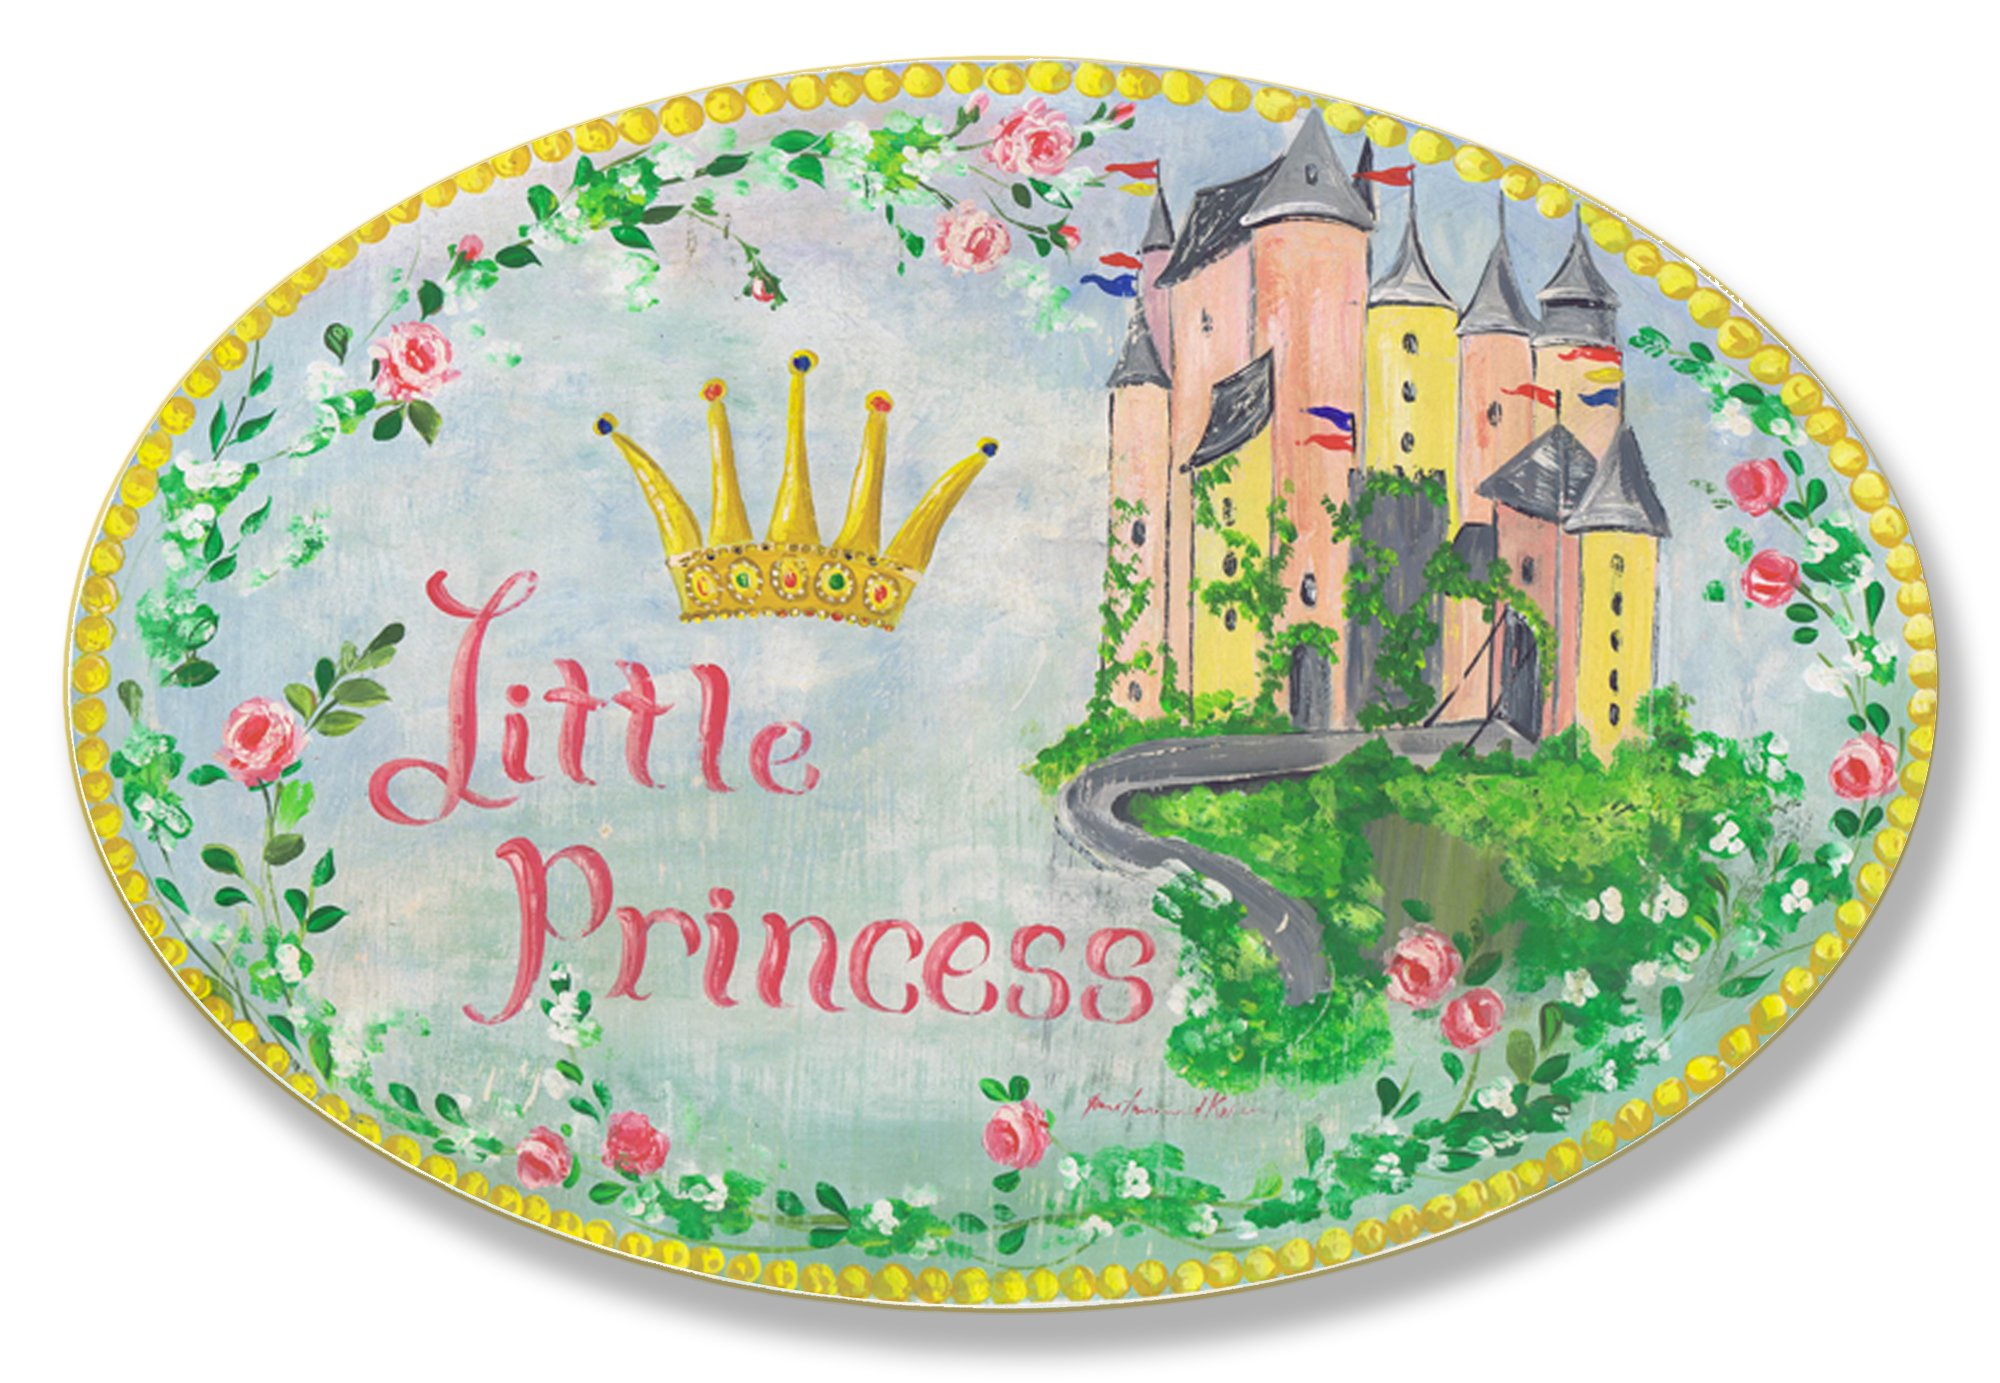 The Kids Room by Stupell Little Princess Floral Border With Castle Oval Wall Plaque, 10 x 0.5 x 15, Proudly Made in USA